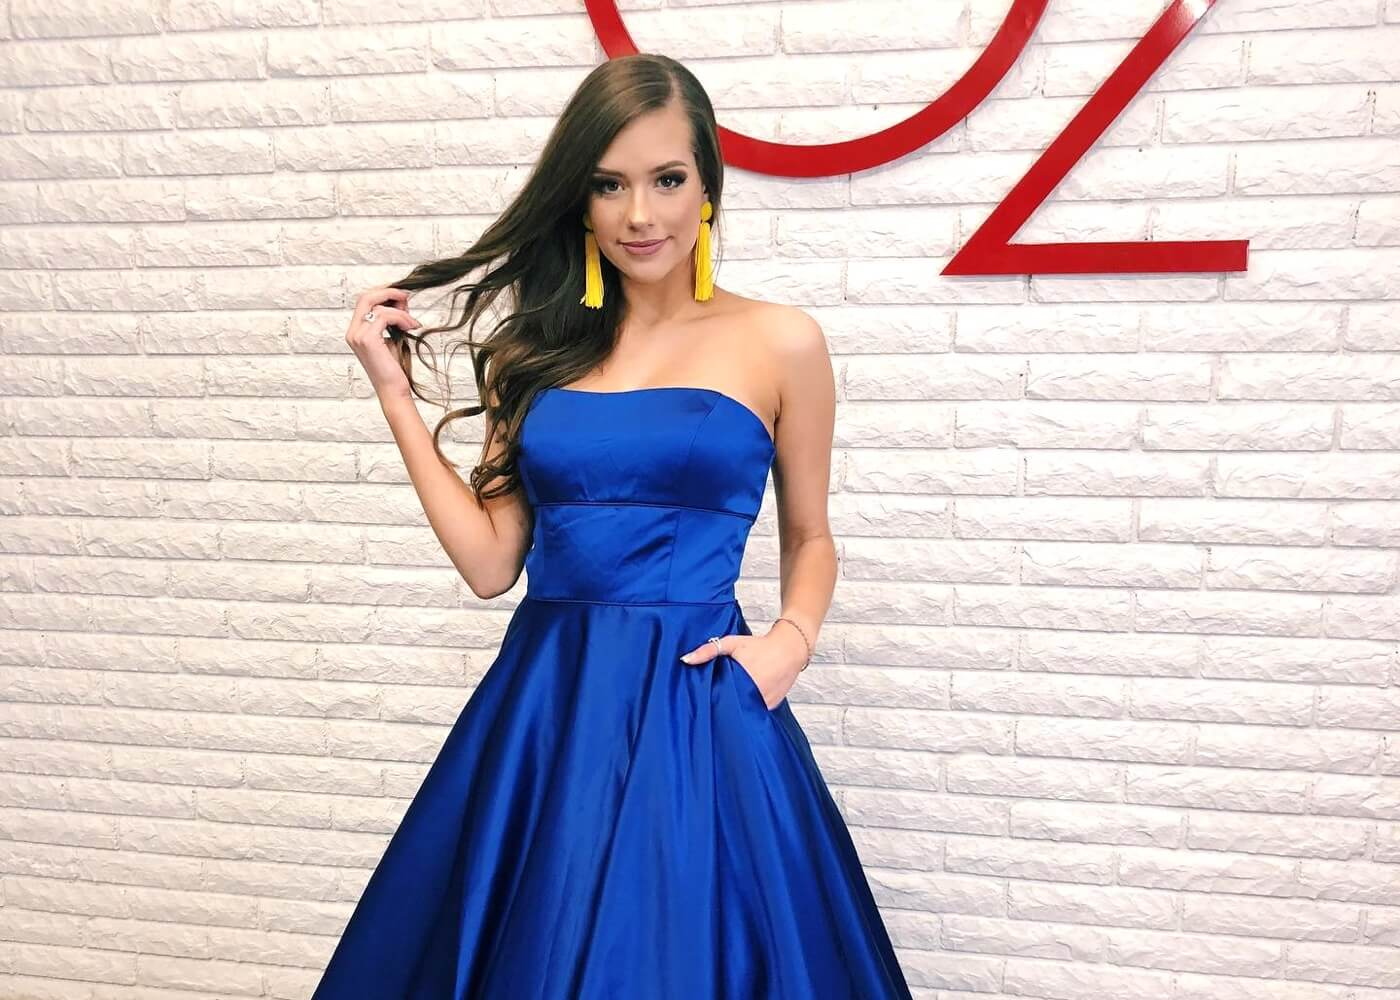 Our girl wearing a blue evening dress